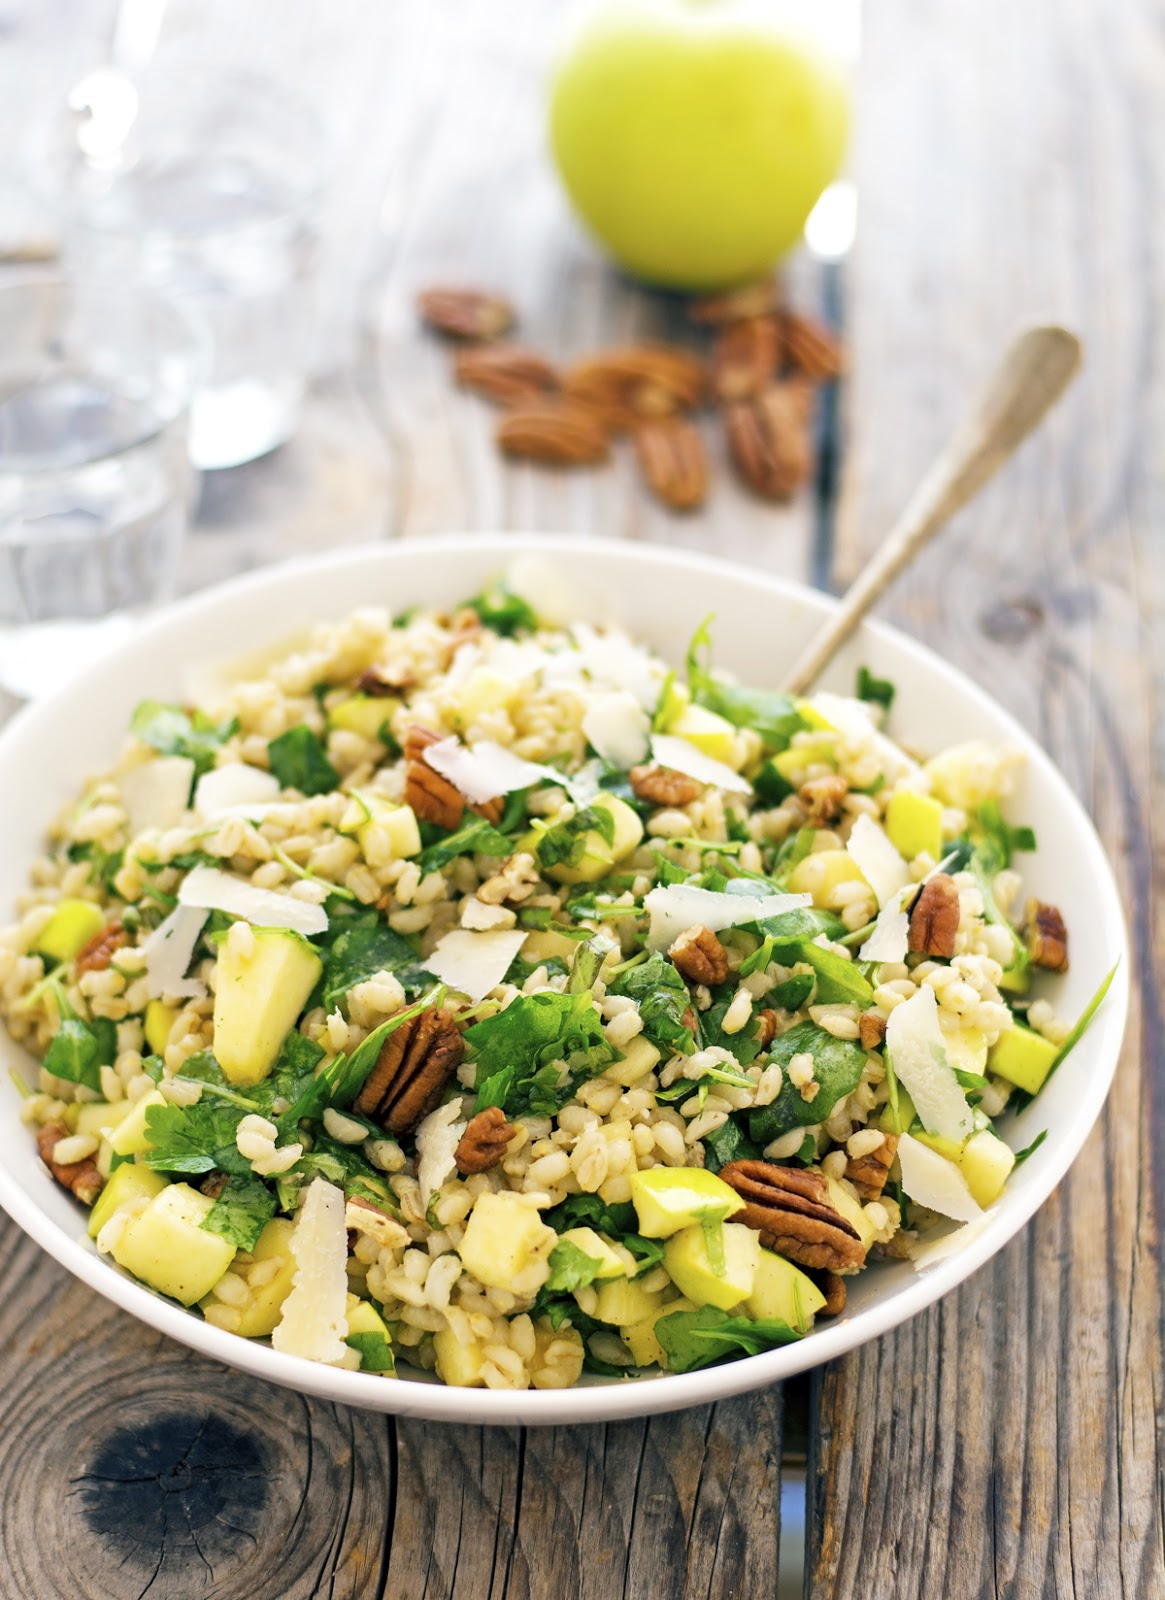 Best-Ever Barley Salad